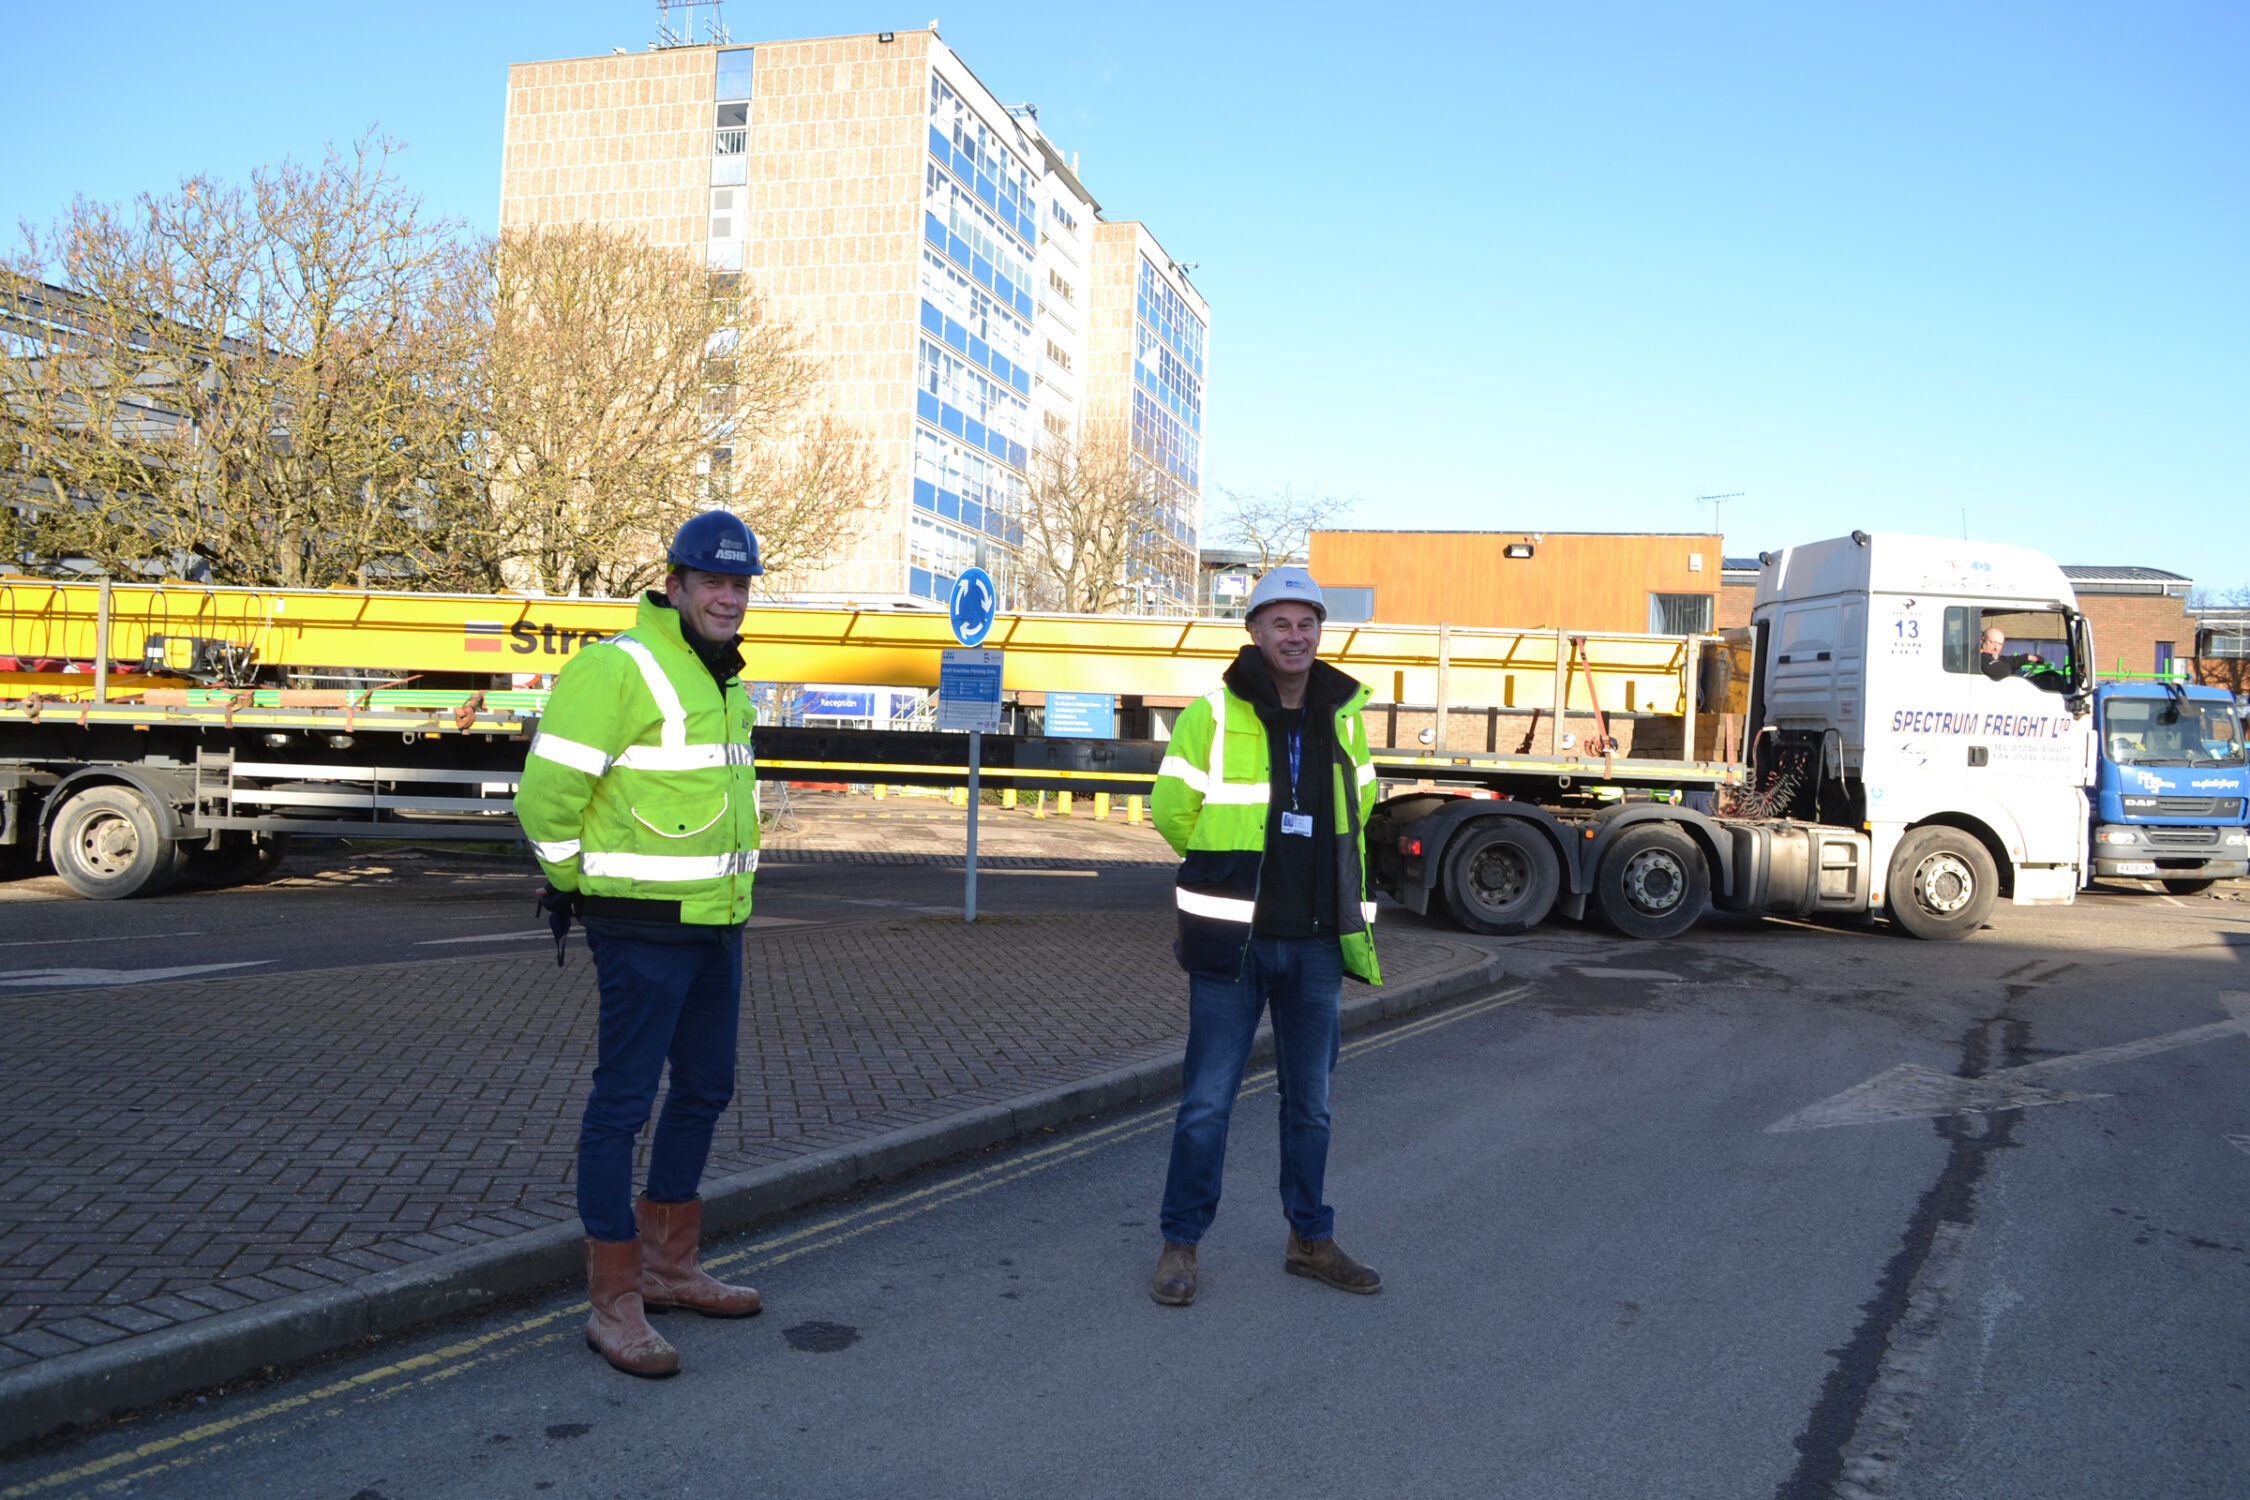 MMC Crane delivery at Bedford College